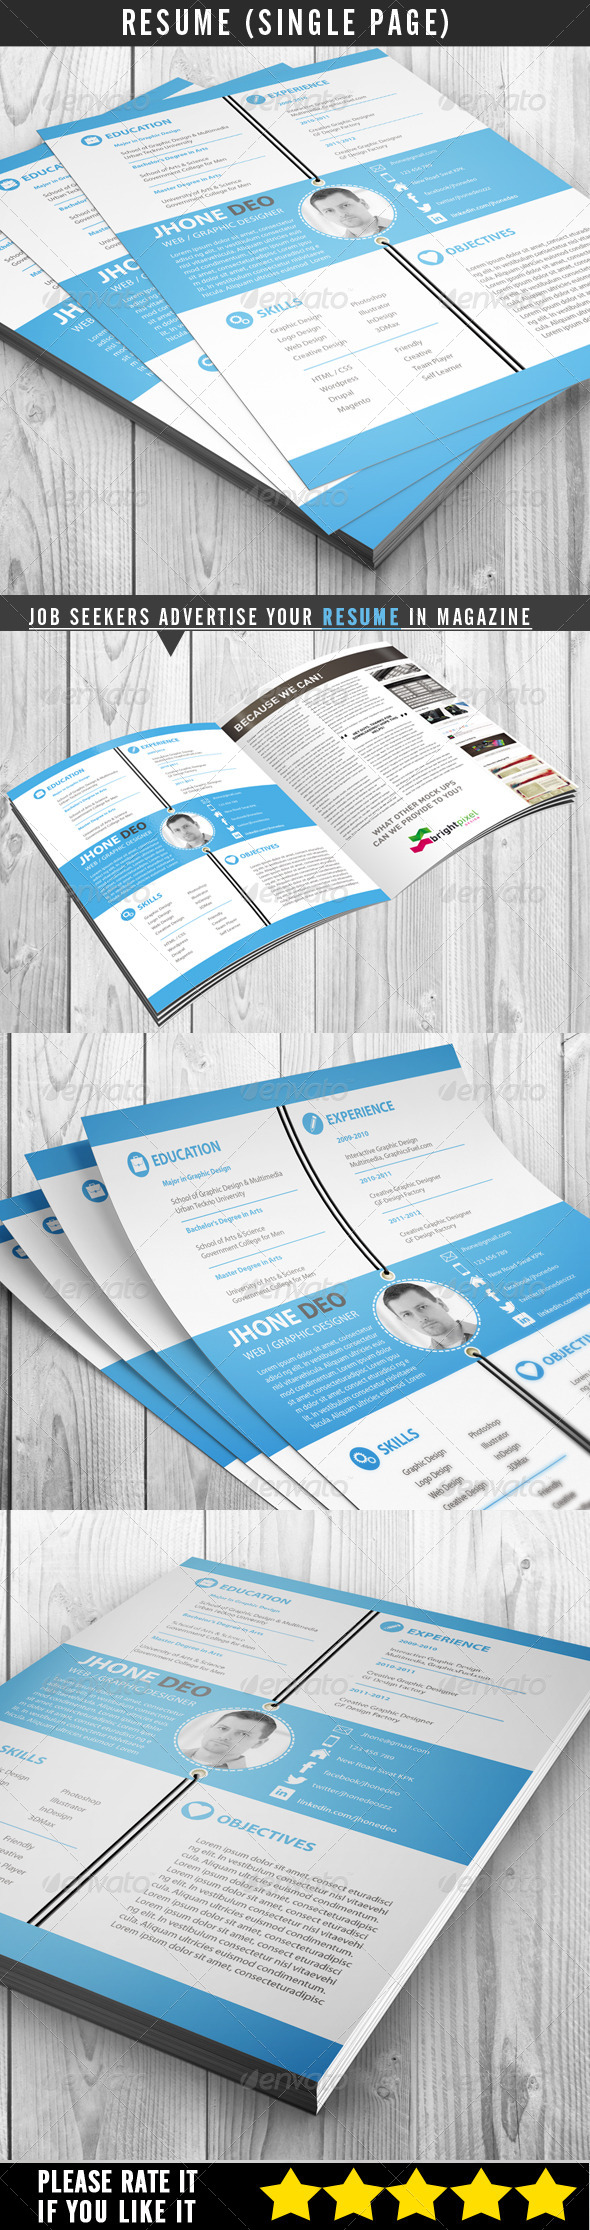 GraphicRiver Resume Single Page 6949911